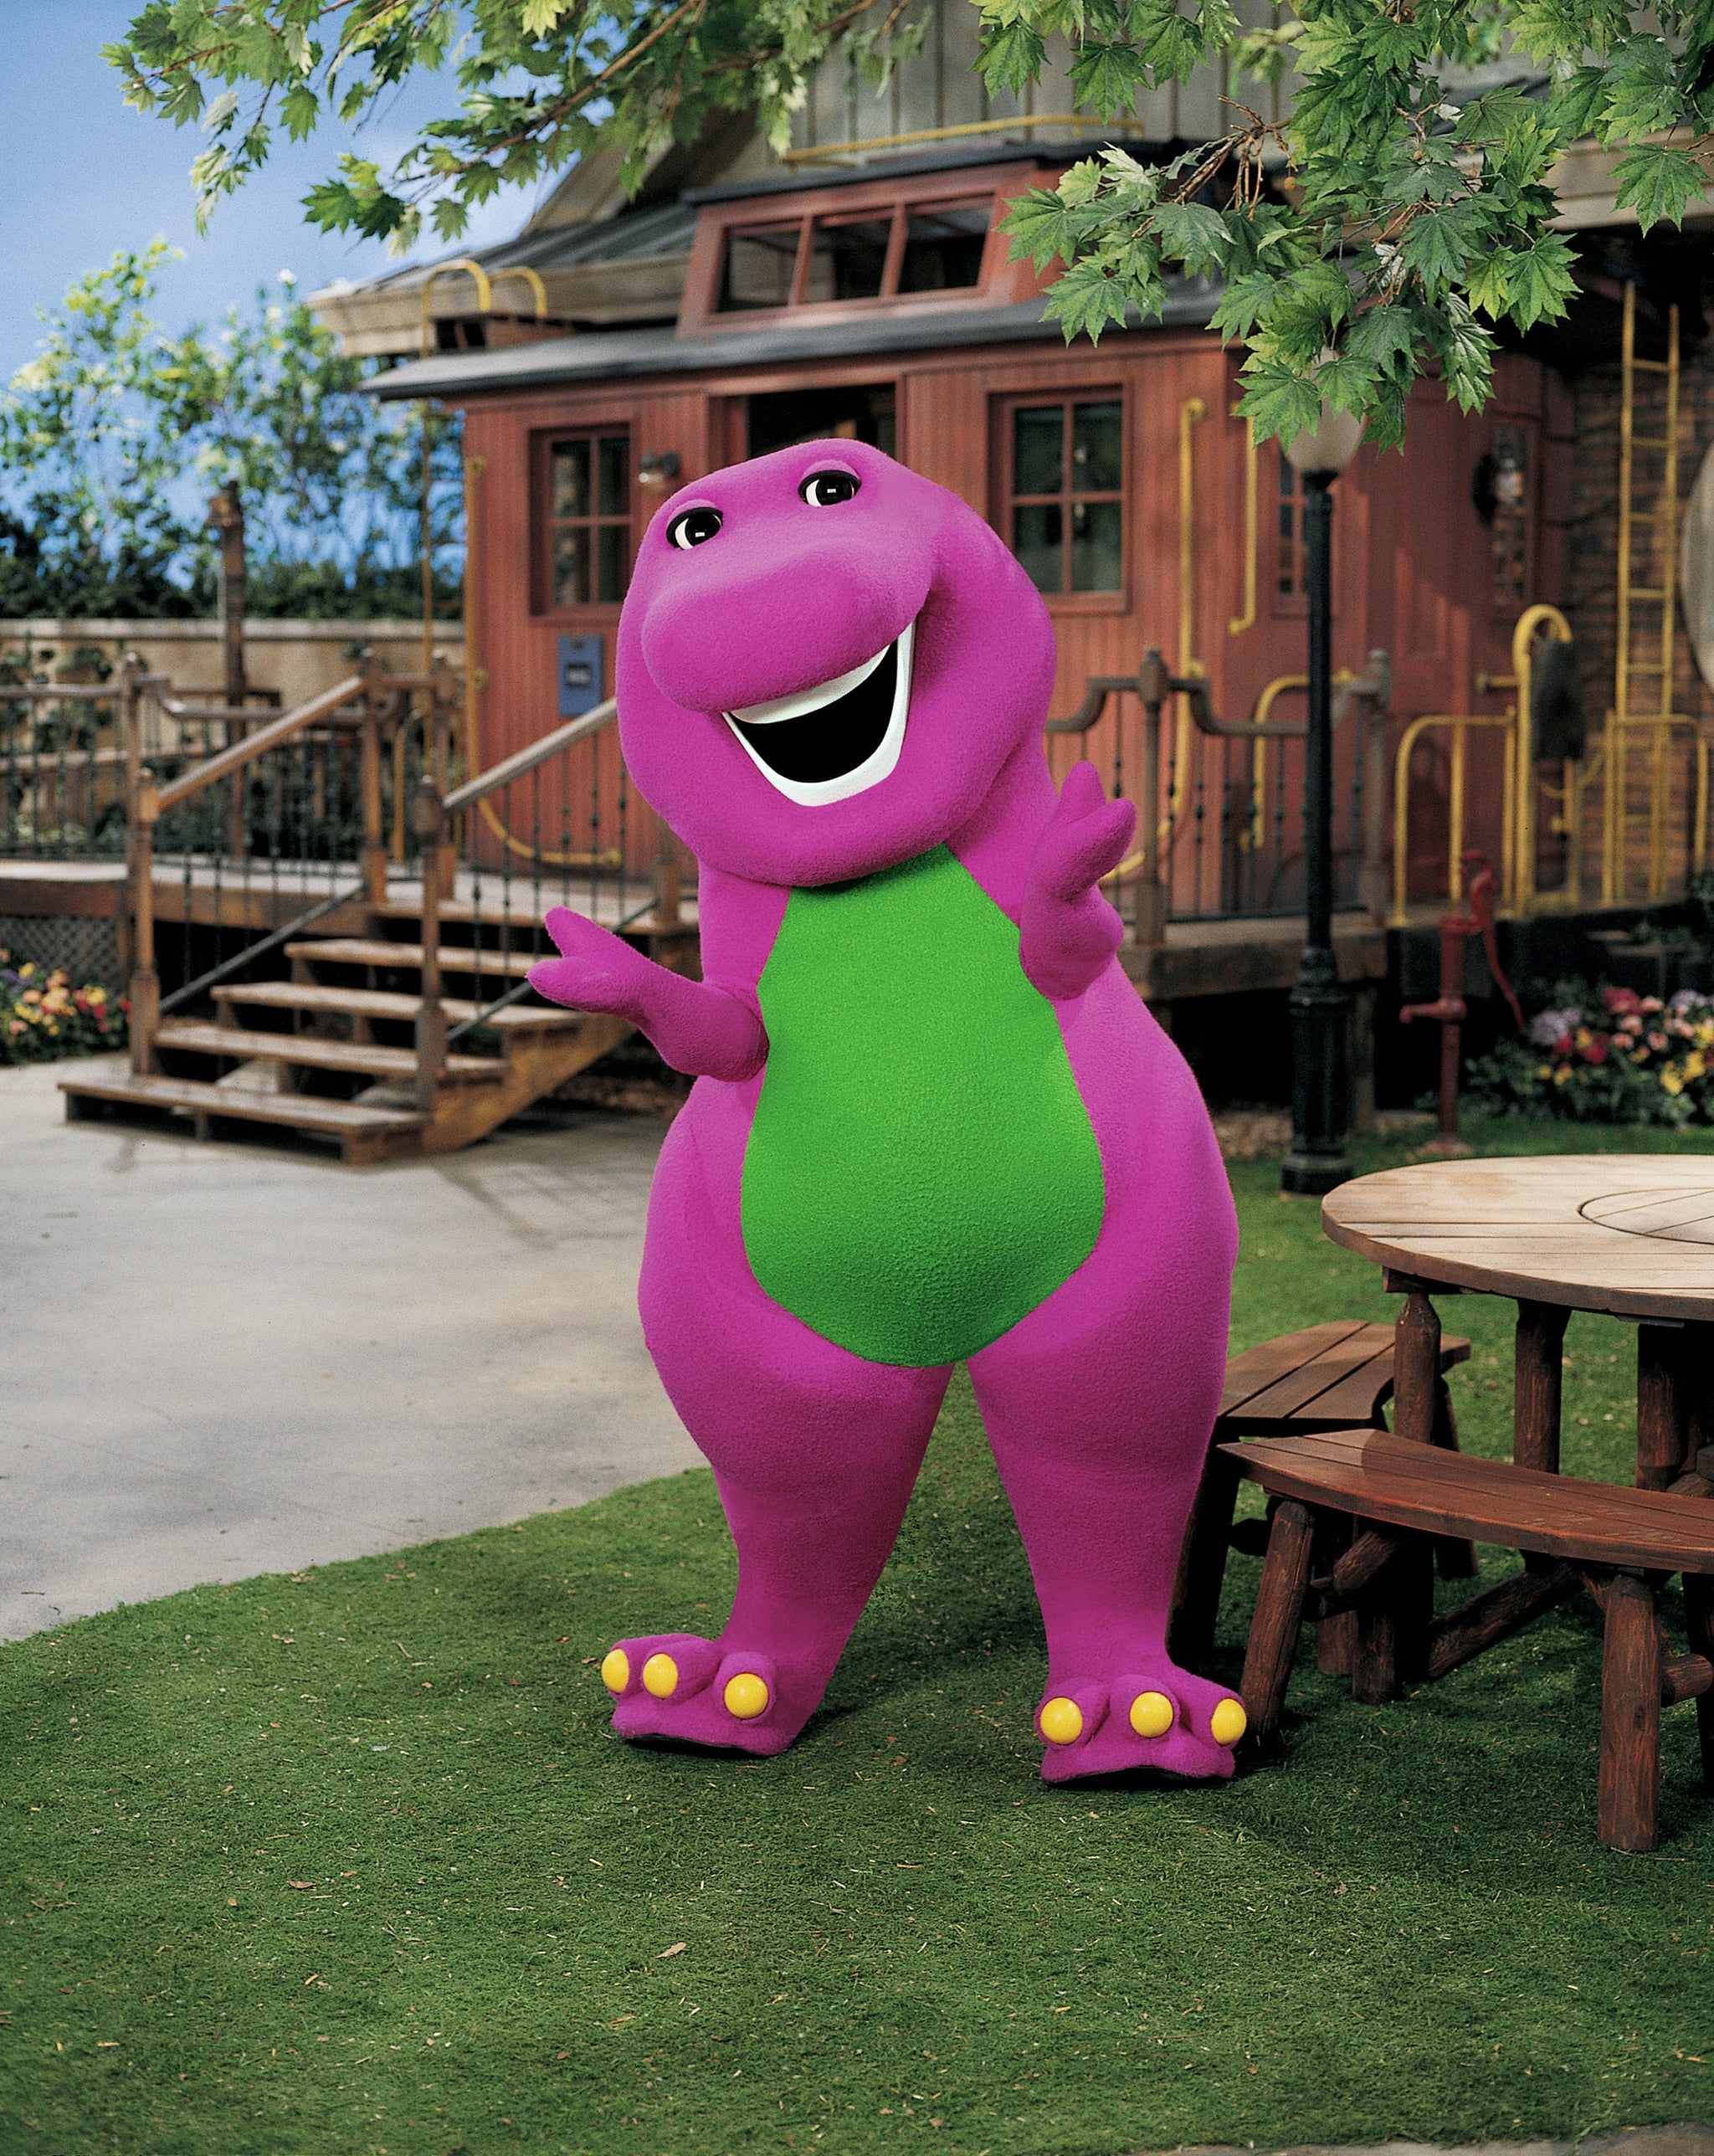 BARNEY AND FRIENDS, Barney the dinosaur, 1992-(c)Hit Entertainment. Courtesy: Everett Collection